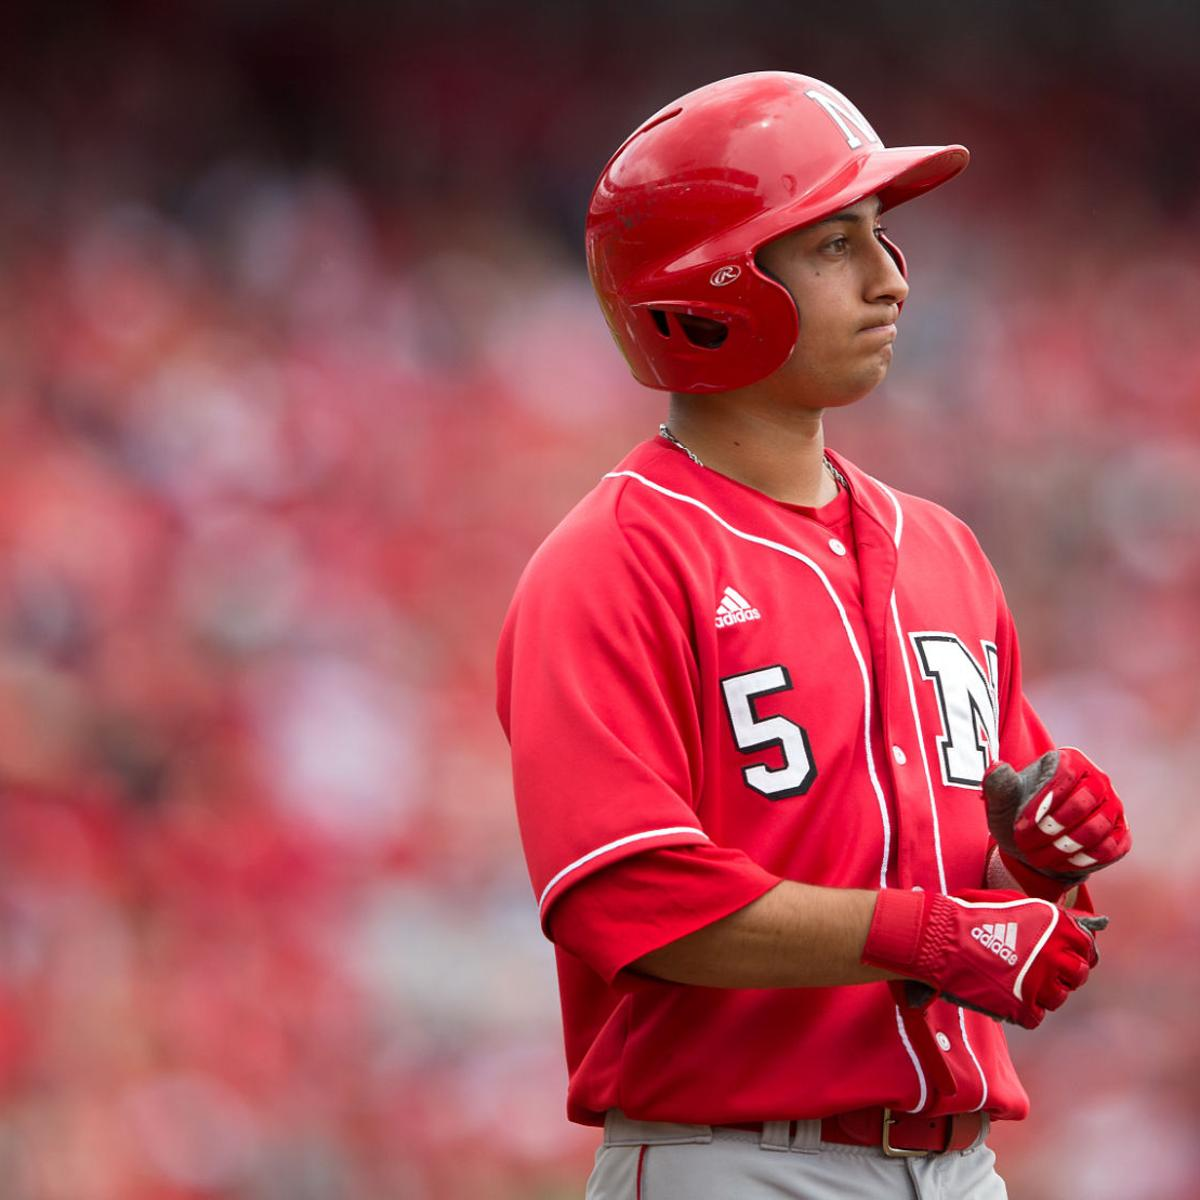 Huskers glad to have shortstop Steven Reveles' leadership